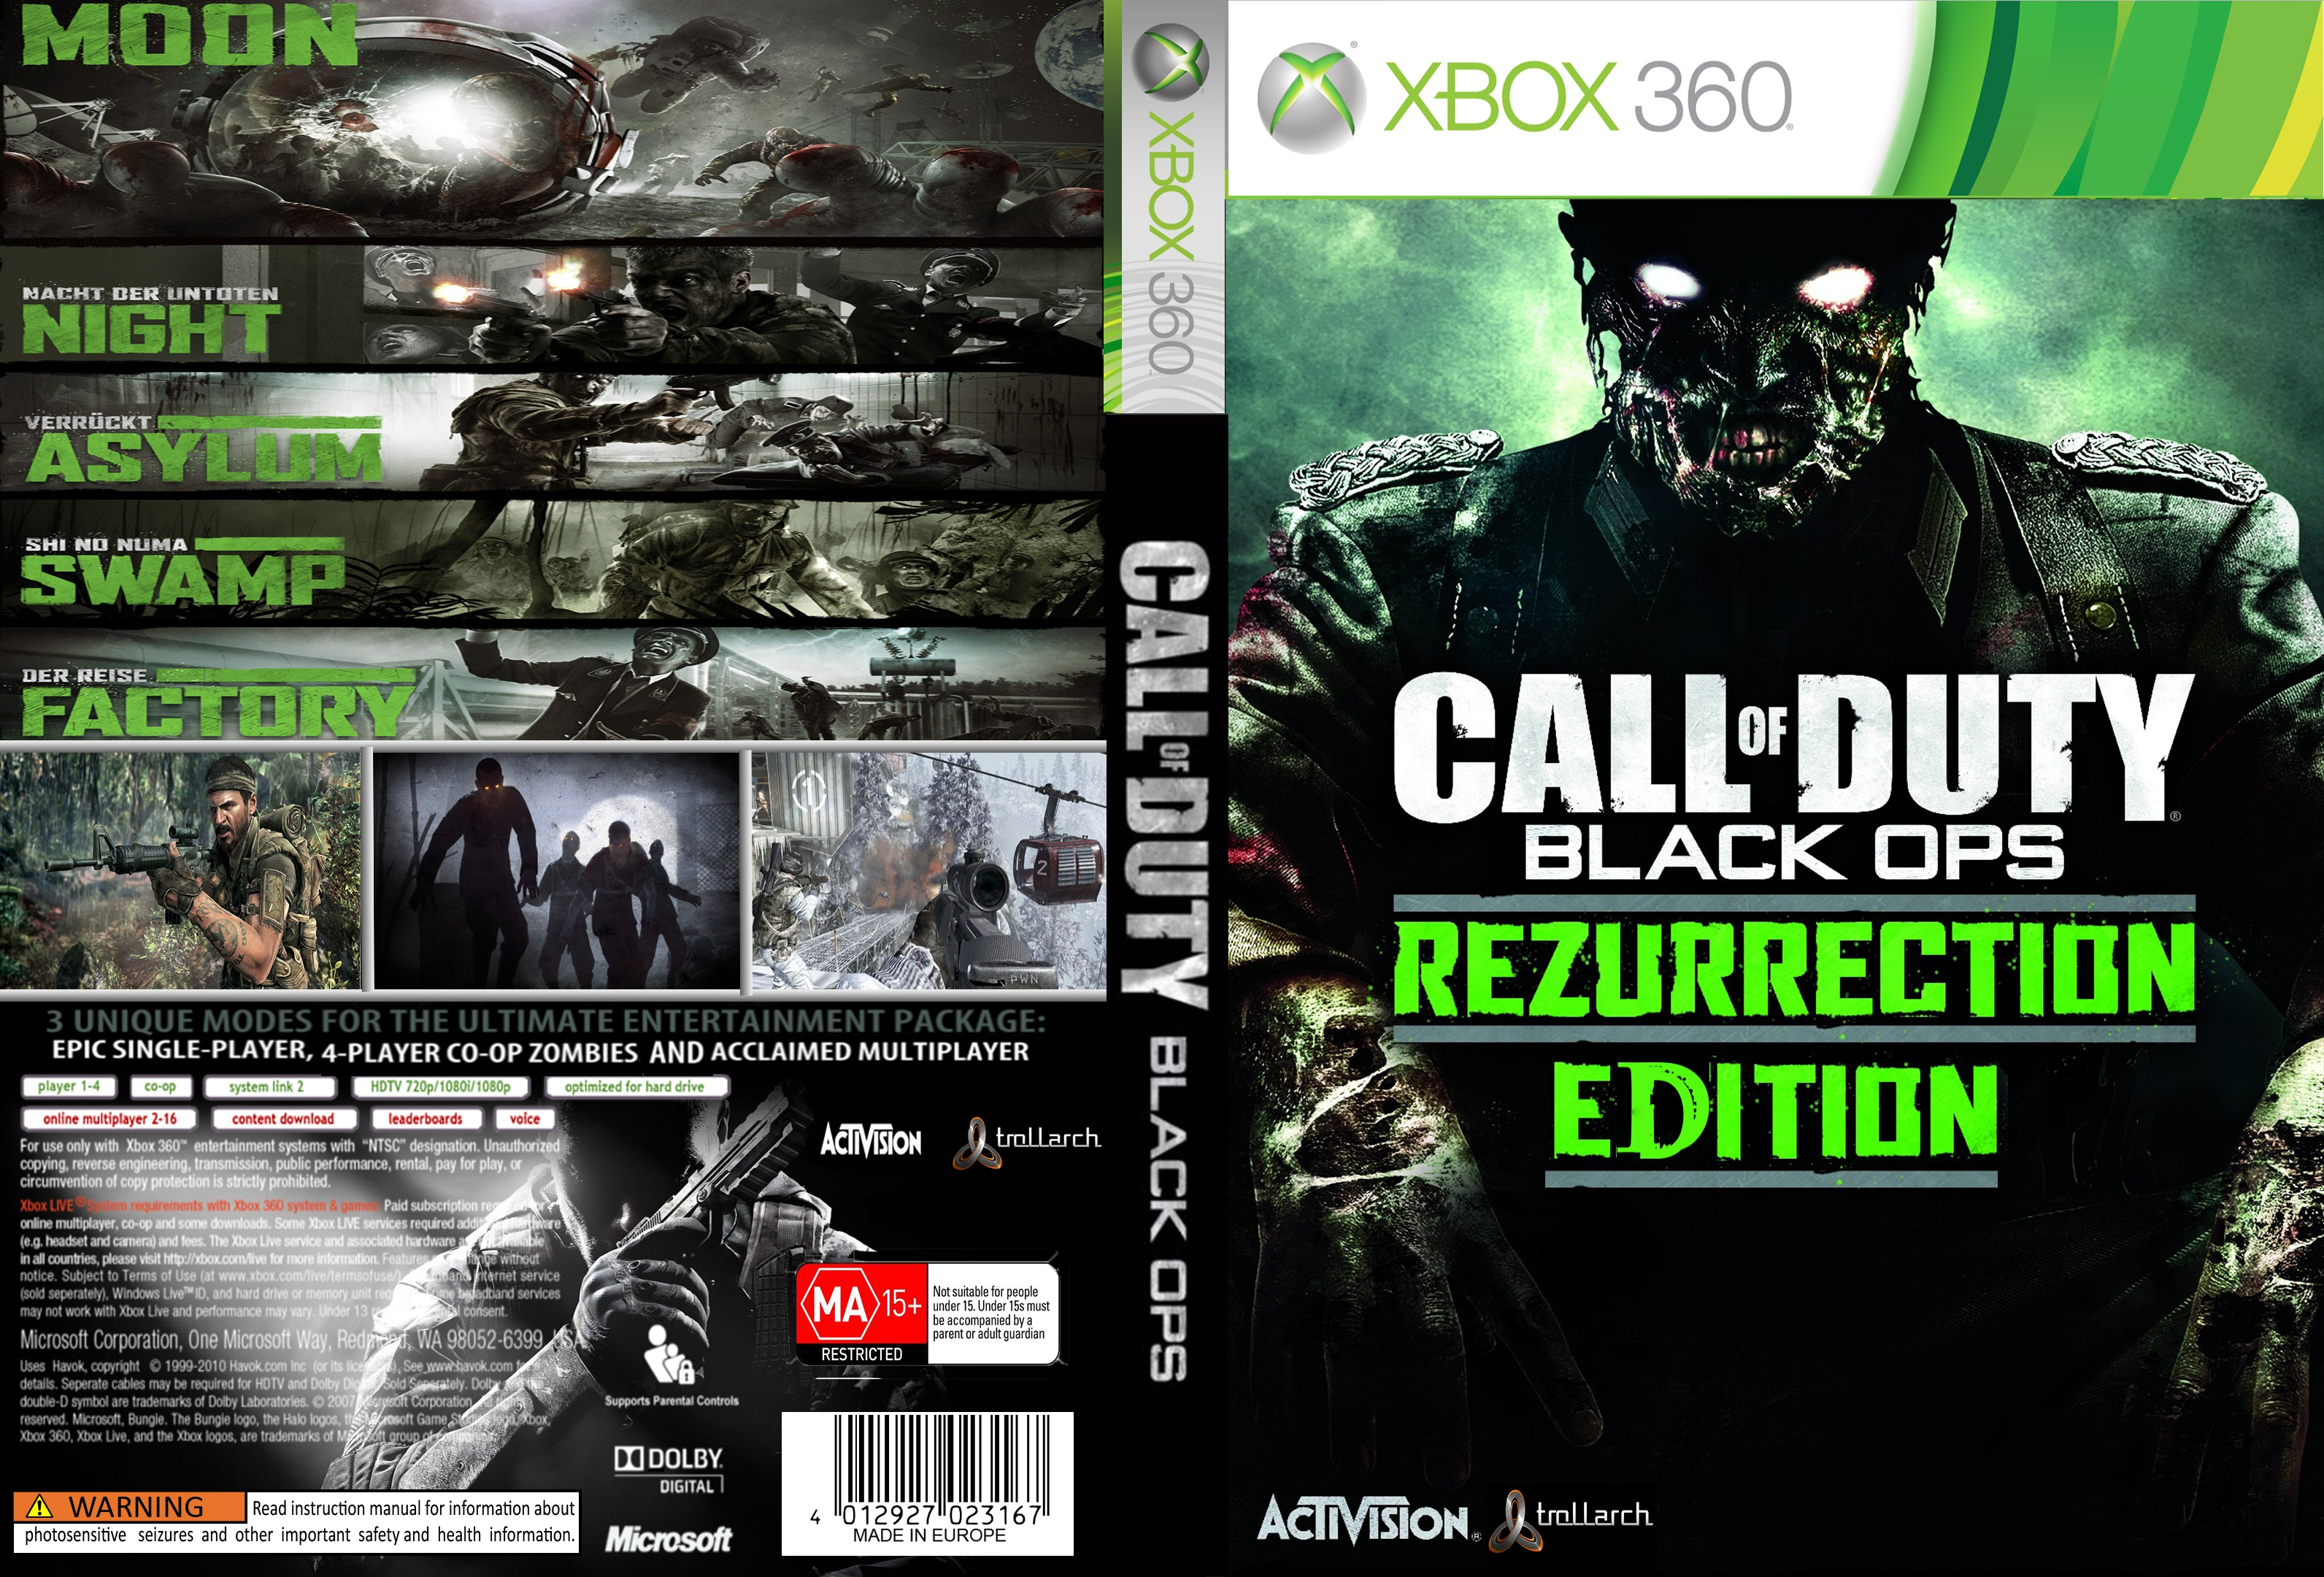 call of duty black ops xbox 360 box art cover by nyan. Black Bedroom Furniture Sets. Home Design Ideas